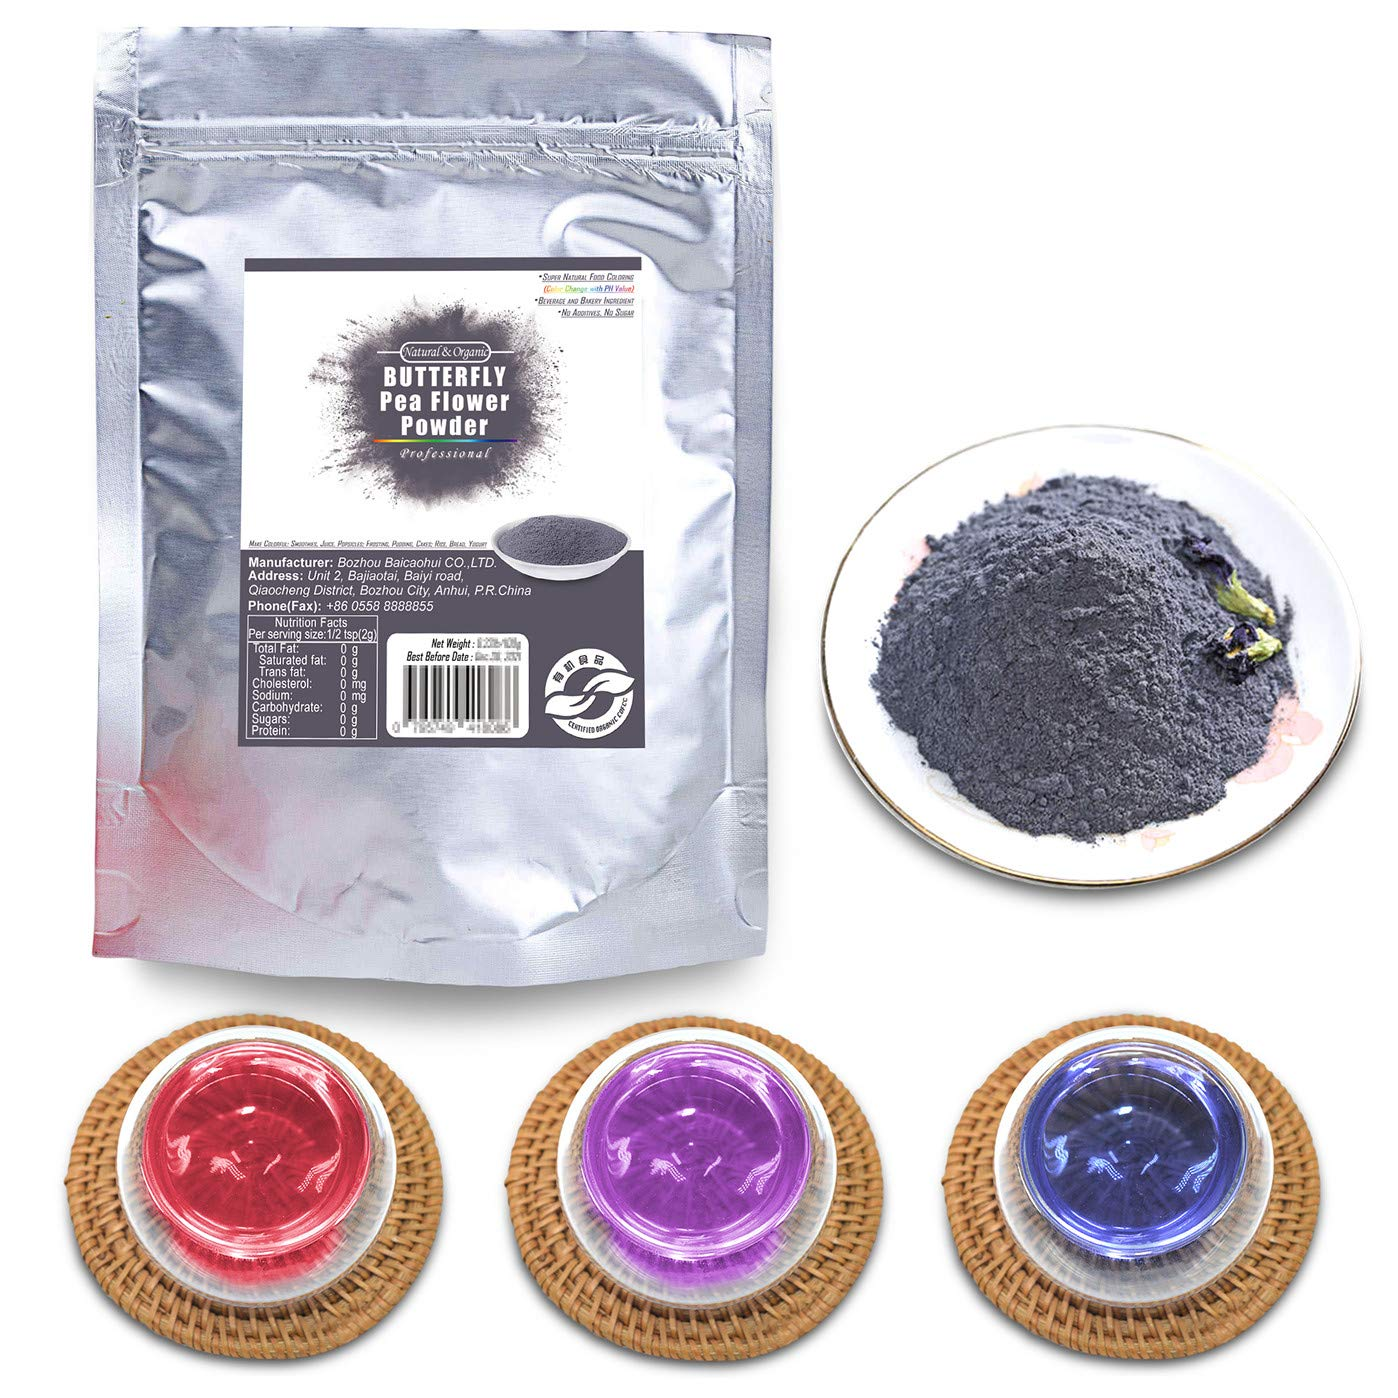 Prettyard Organic Blue Butterfly Pea Flower Powder (Natural Color, Not Blue) - Natural Food and Beverage Coloring Change with PH Value, No Additives -Beverage & Bakery Ingredient (8.8OZ/0.55LB/250g)